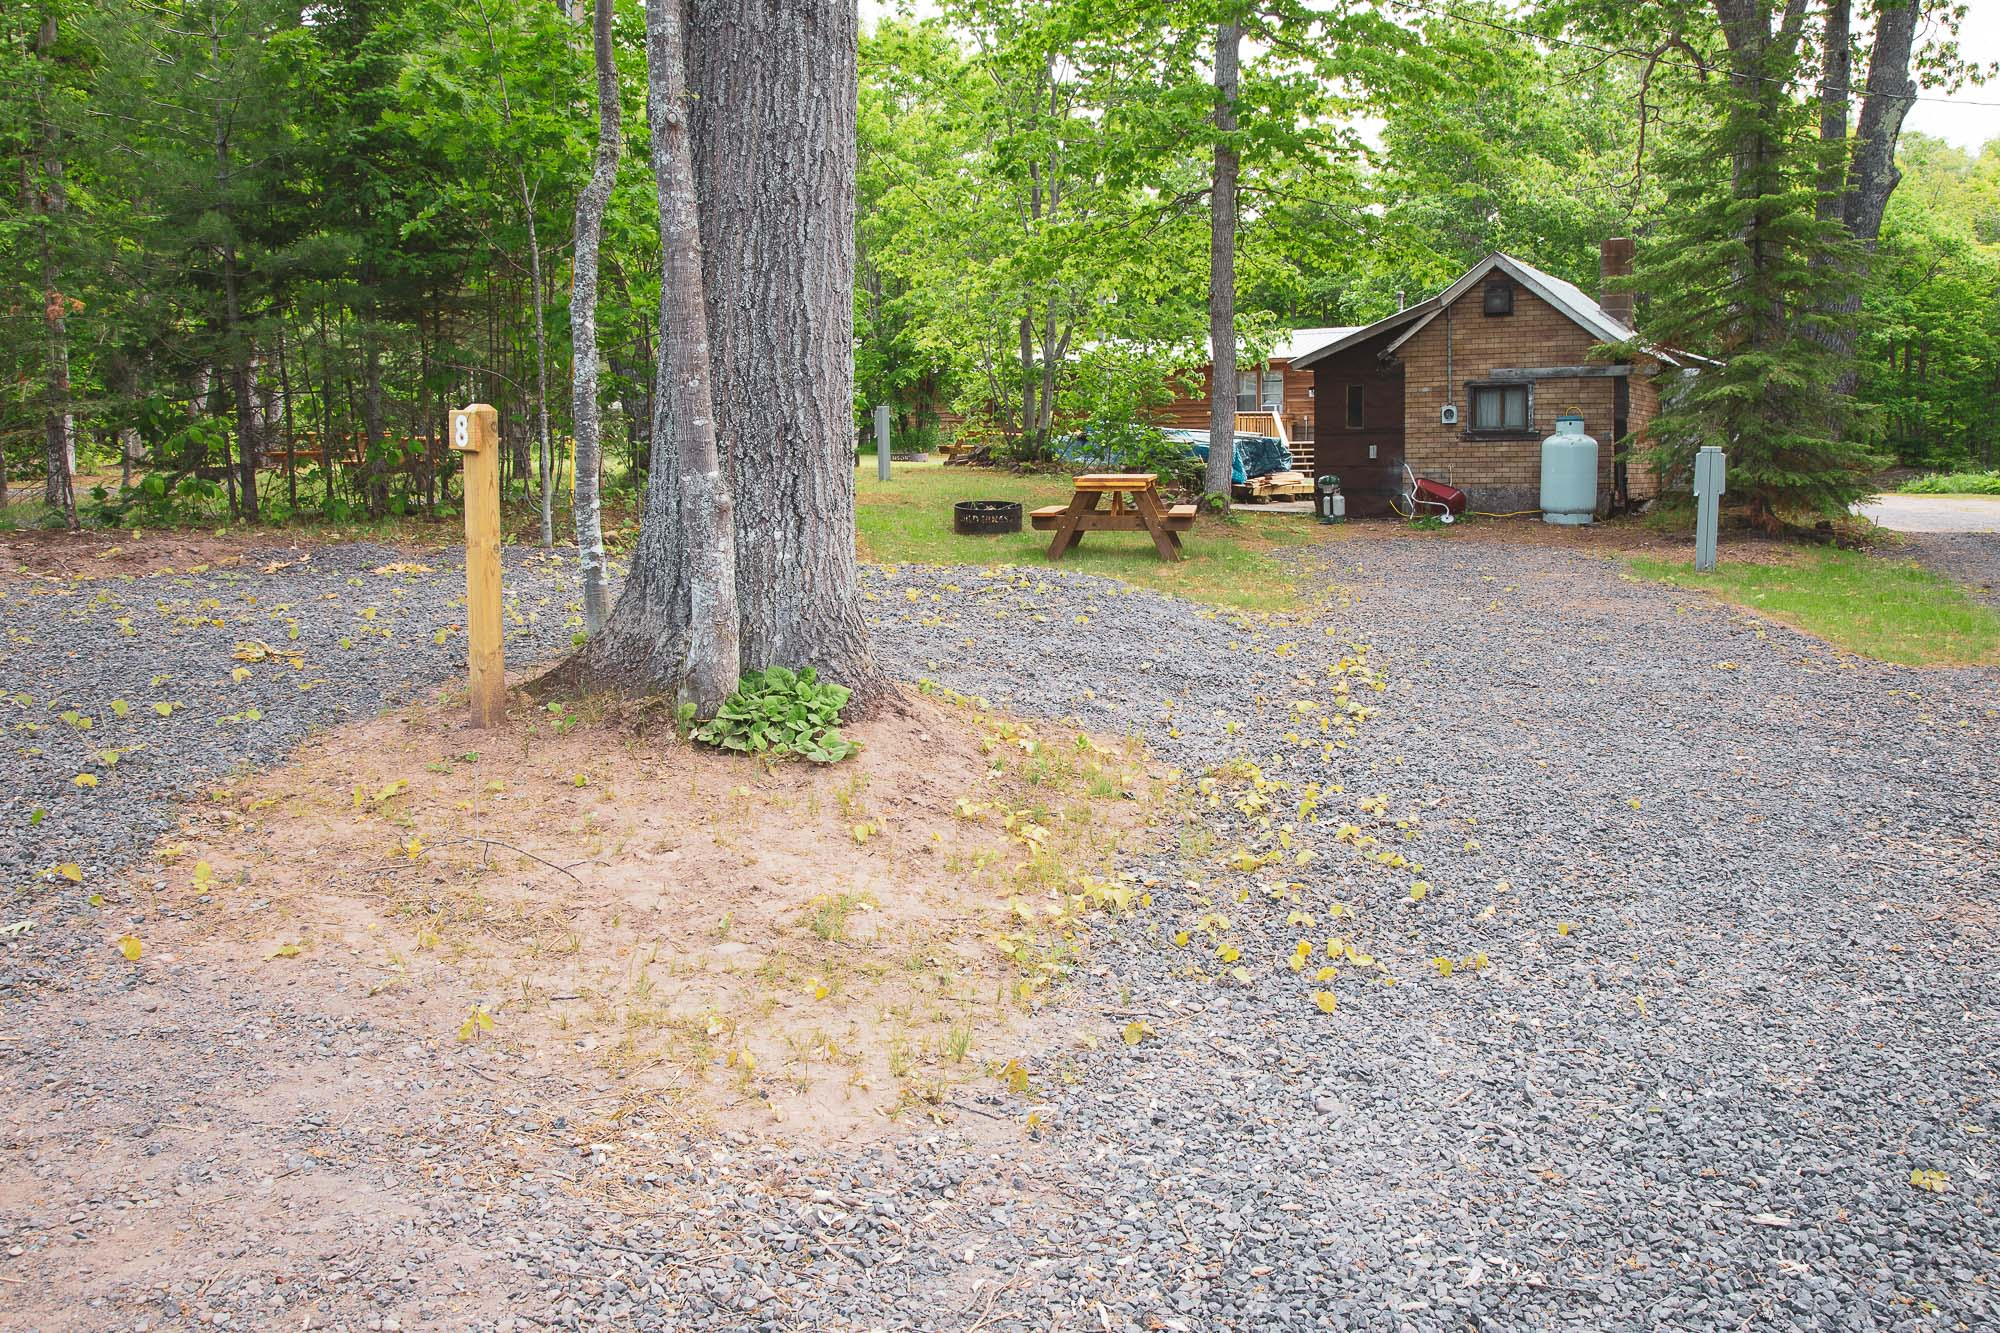 Photo of Campground Site 8  at the Wilderness Resort in Lac La Belle Michigan